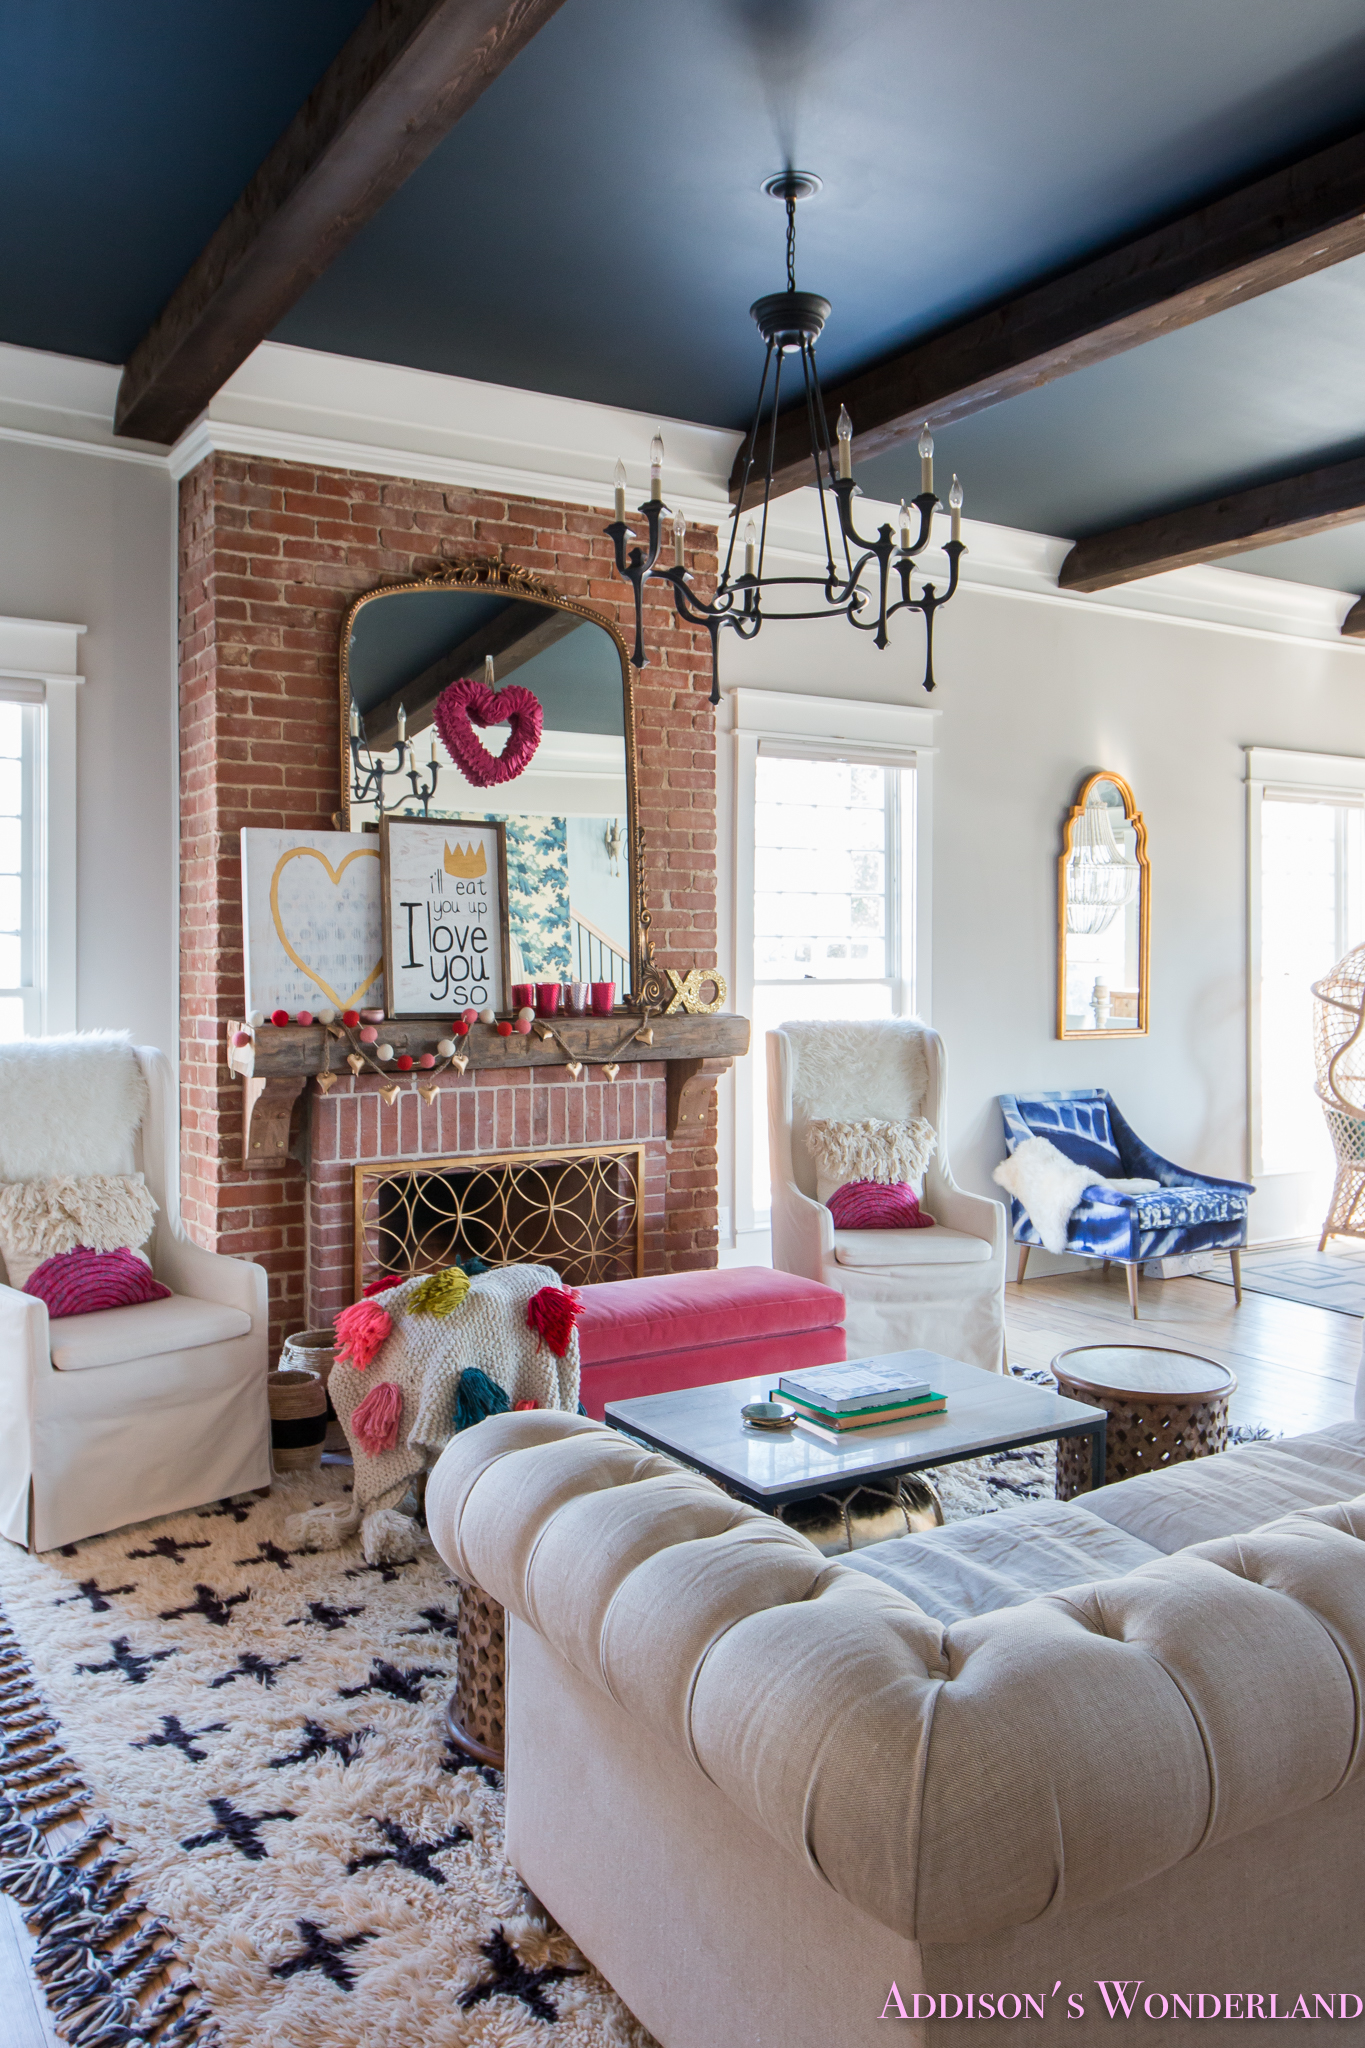 Home Interior Design For Living Room: Our Colorful, Whimsical & Elegant Valentine's Day Living